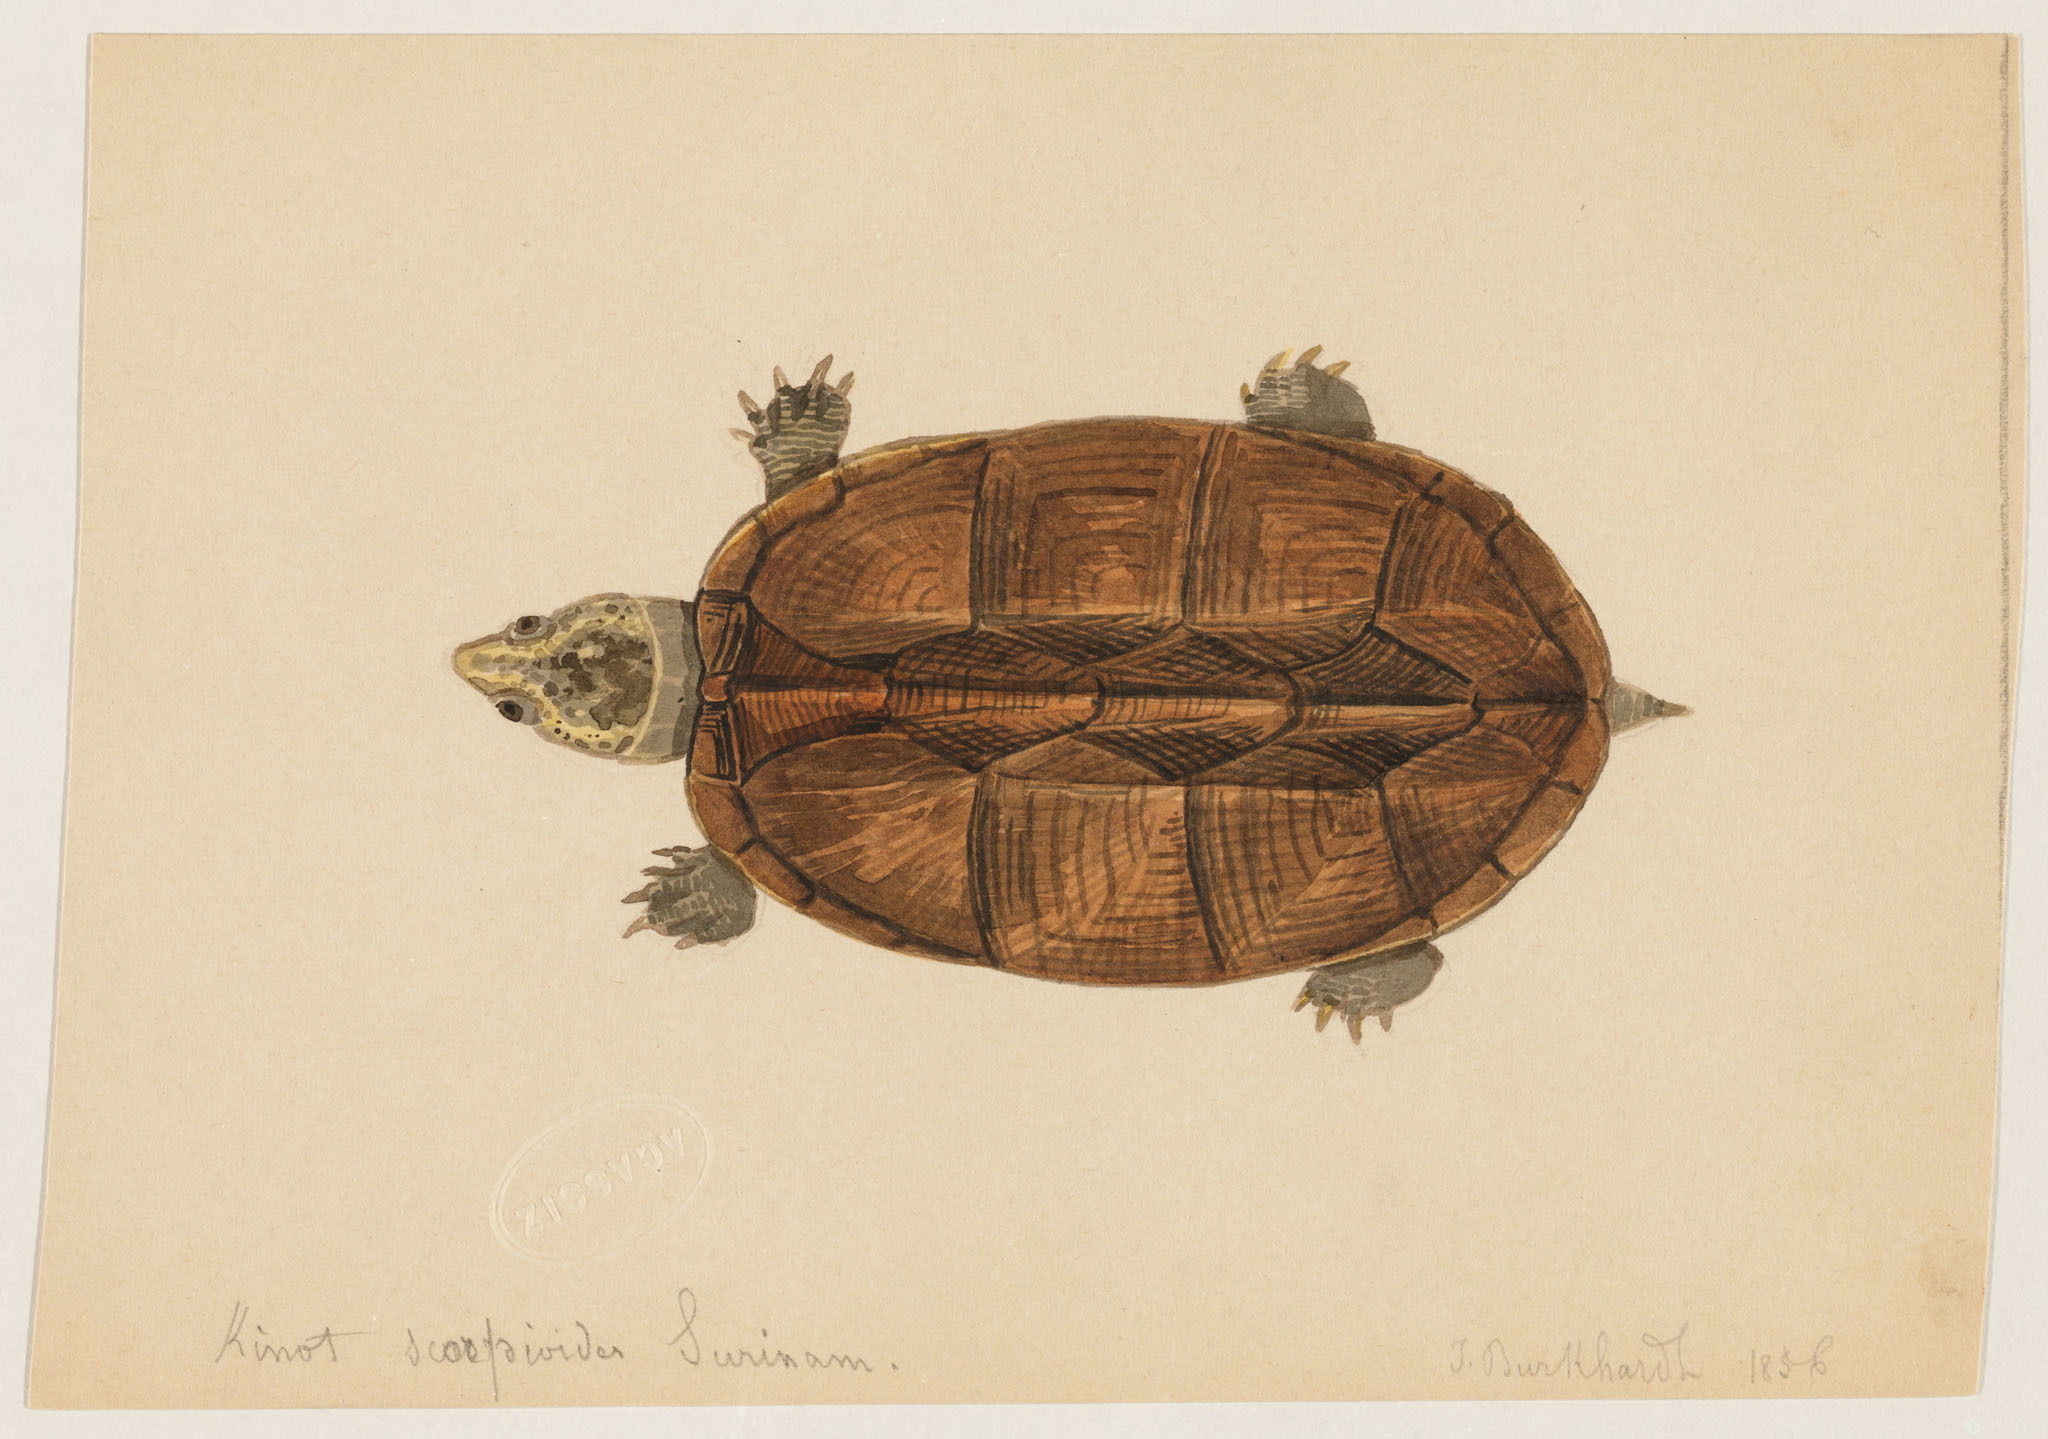 Image of Scorpian mud turtle